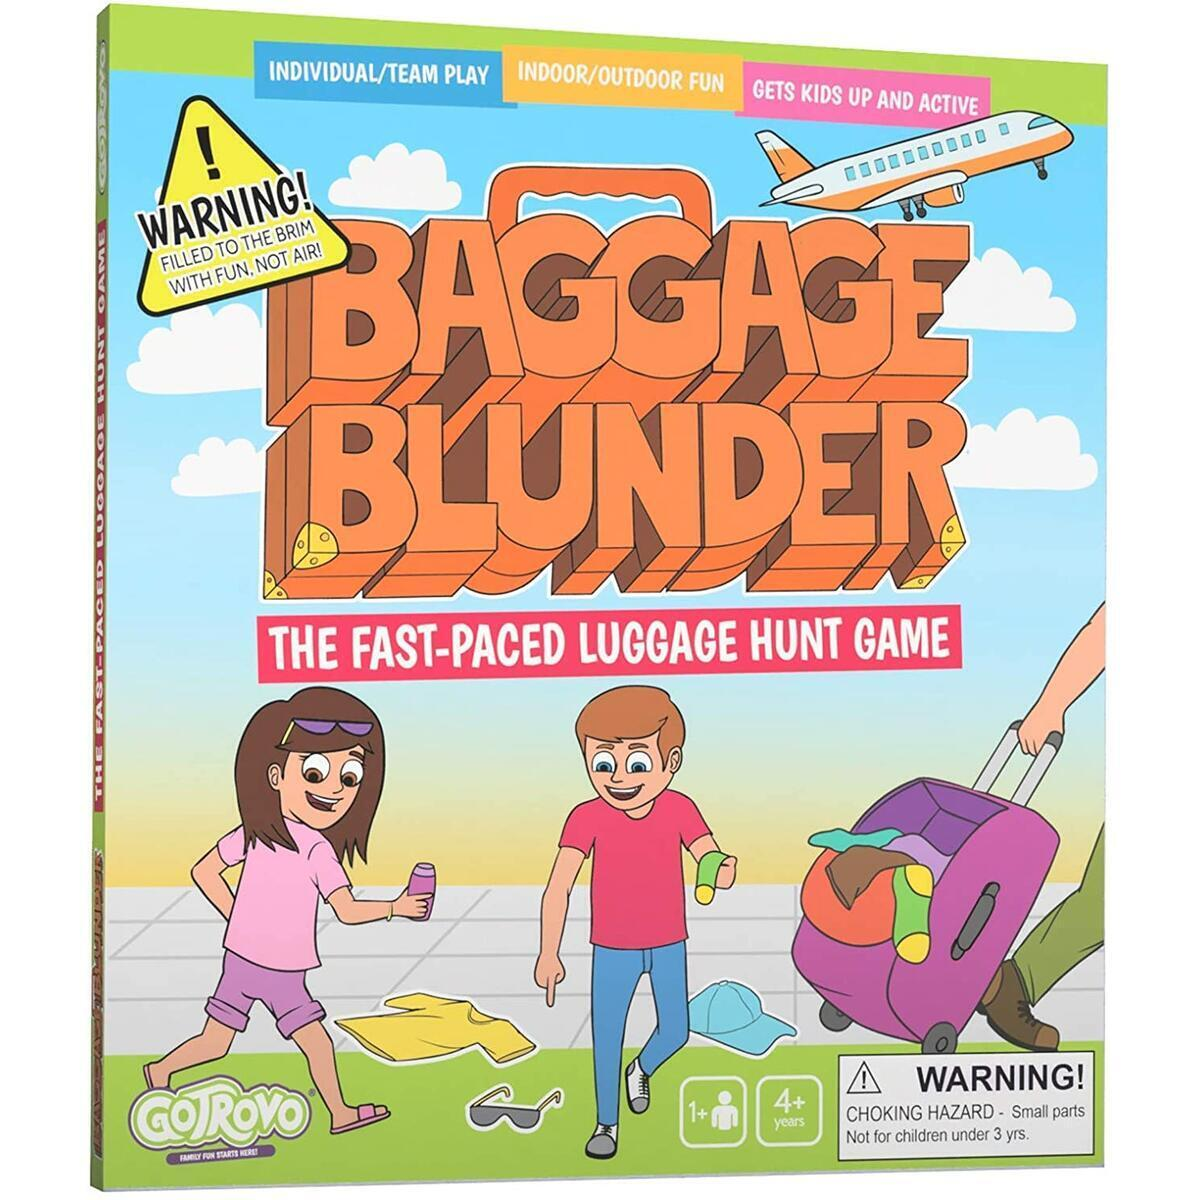 Baggage Blunder Fast-Paced Luggage Scavenger Hunt Game